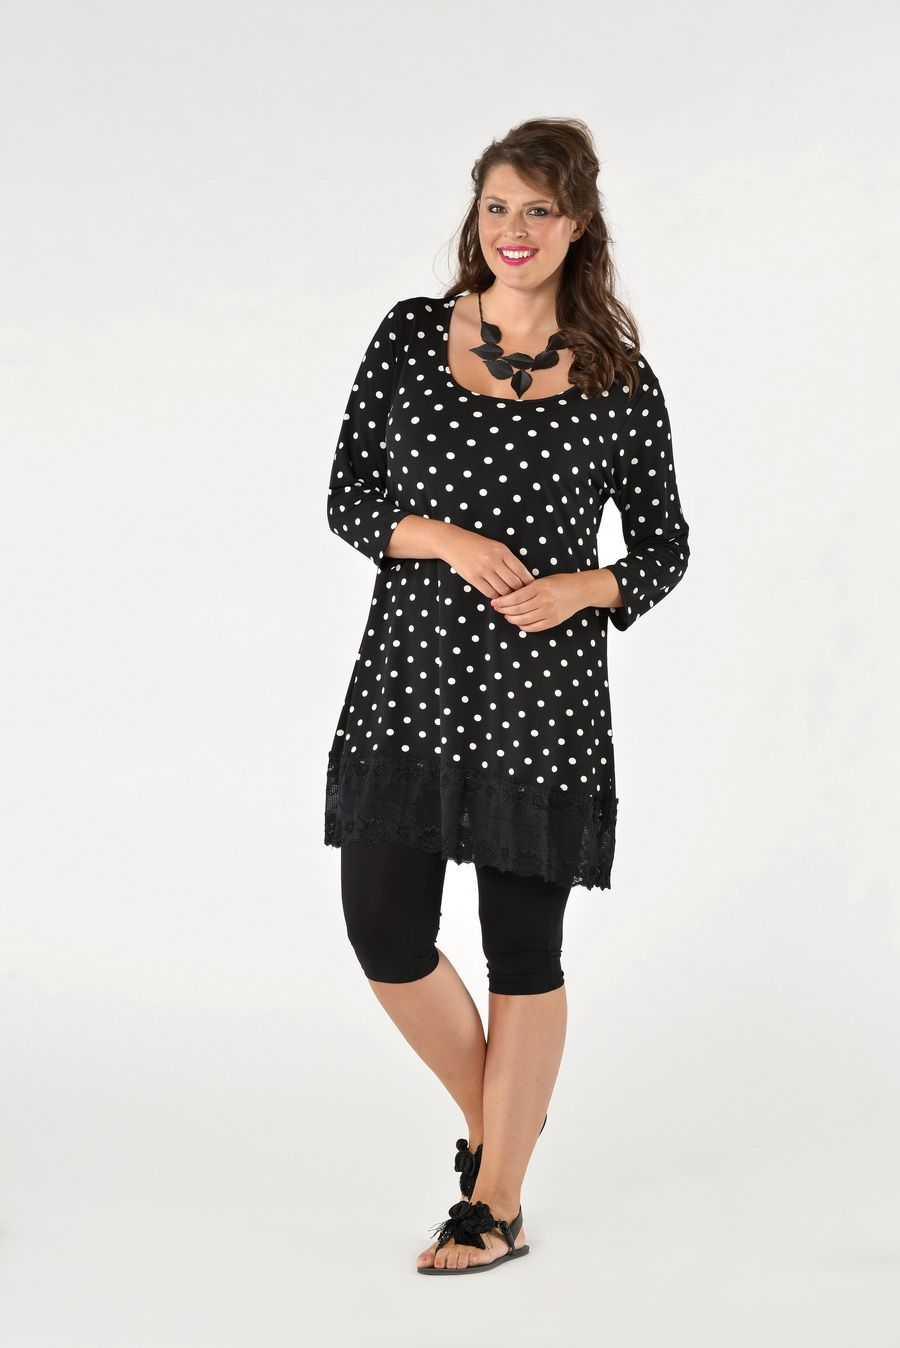 Plus Size Tunics For Leggings. 100 White Dress And ...